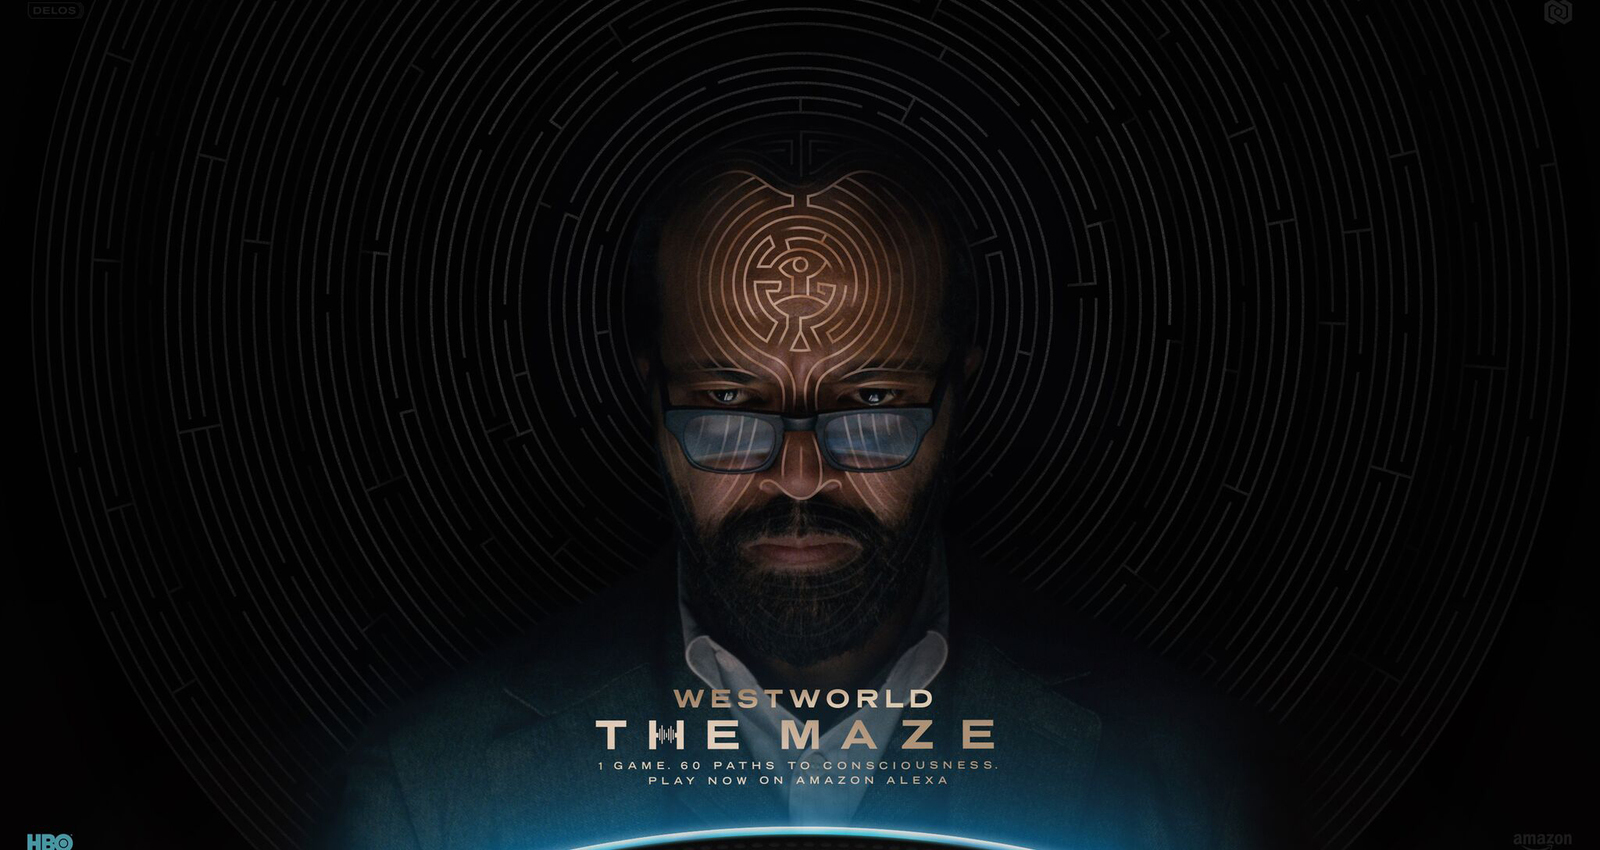 Westworld: The Maze